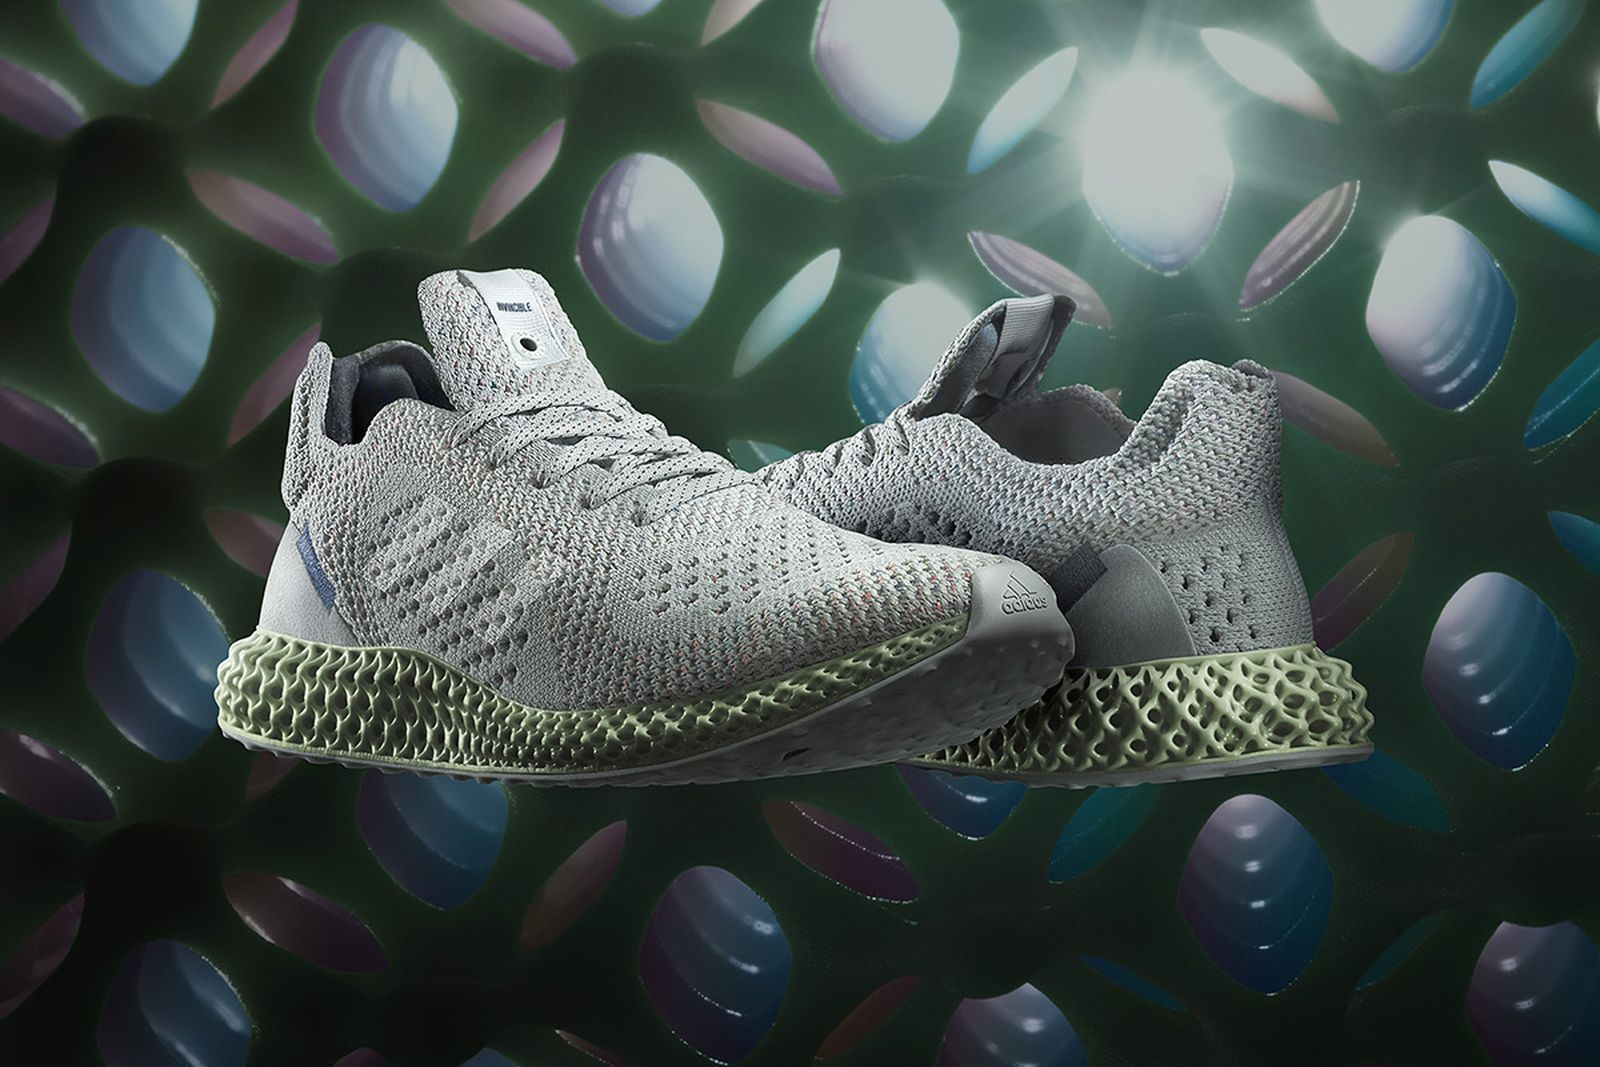 referir blusa diagonal  Invincible x adidas Consortium 4D: Release Date, Price, & More Info